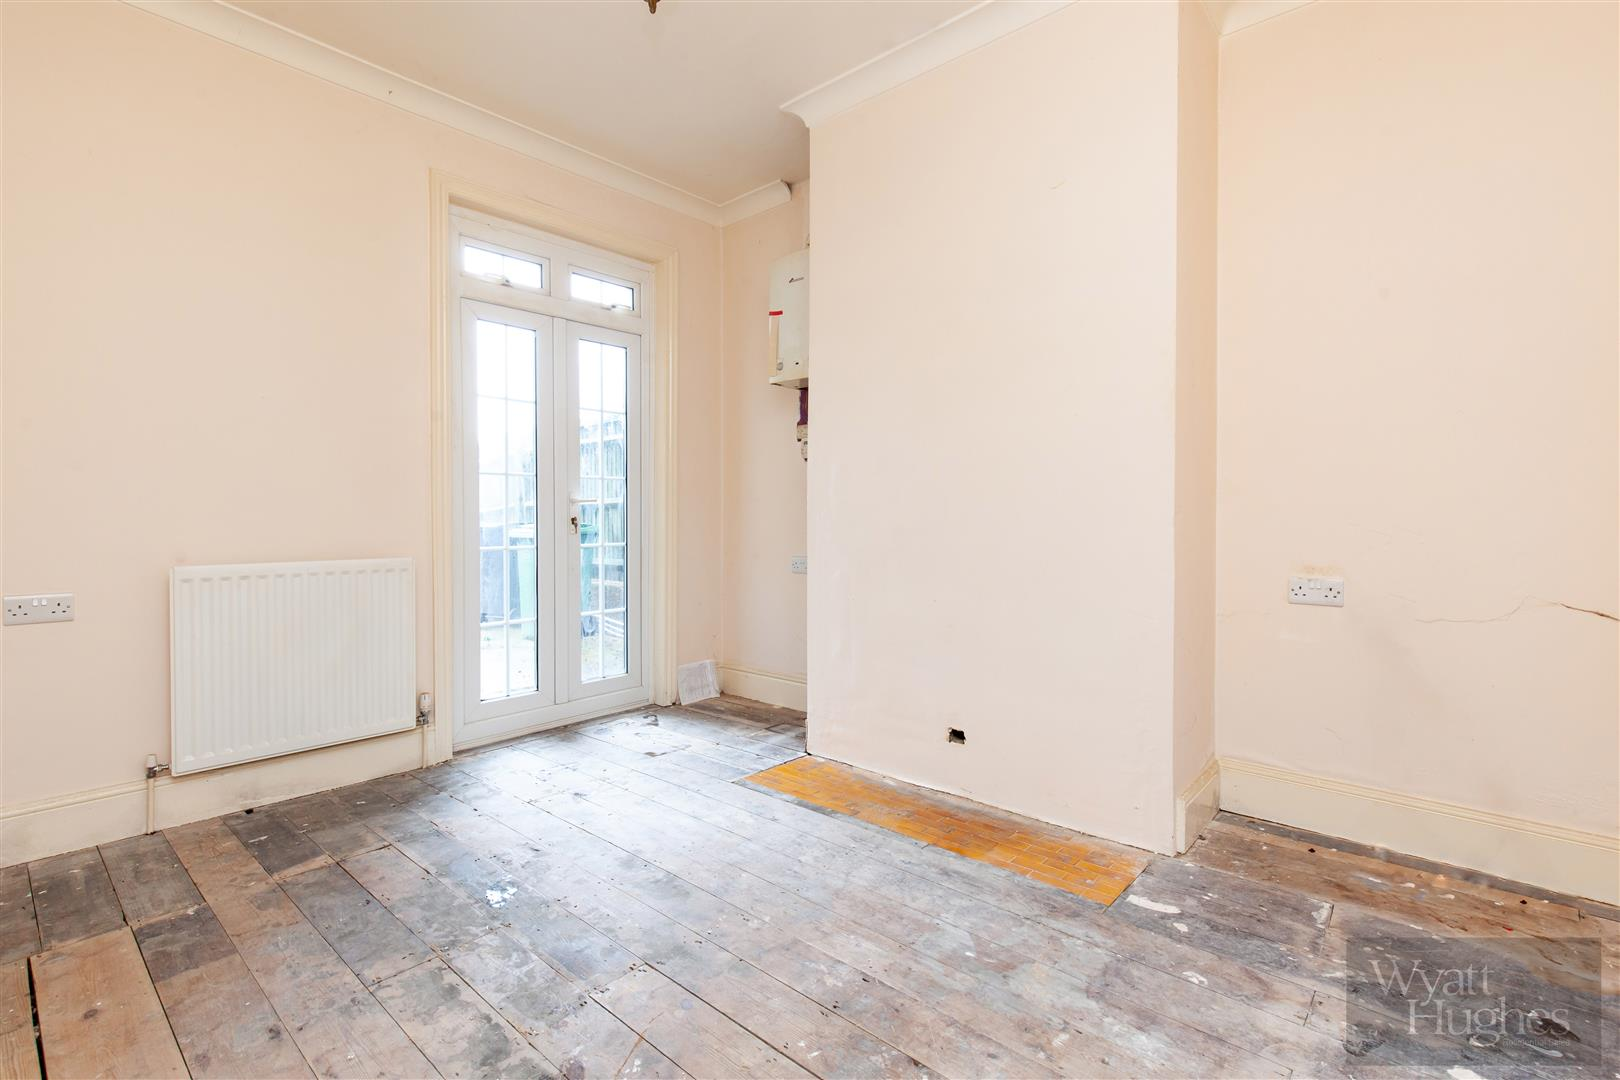 3 bed end-of-terrace-house for sale in Burry Road, St. Leonards-On-Sea  - Property Image 17